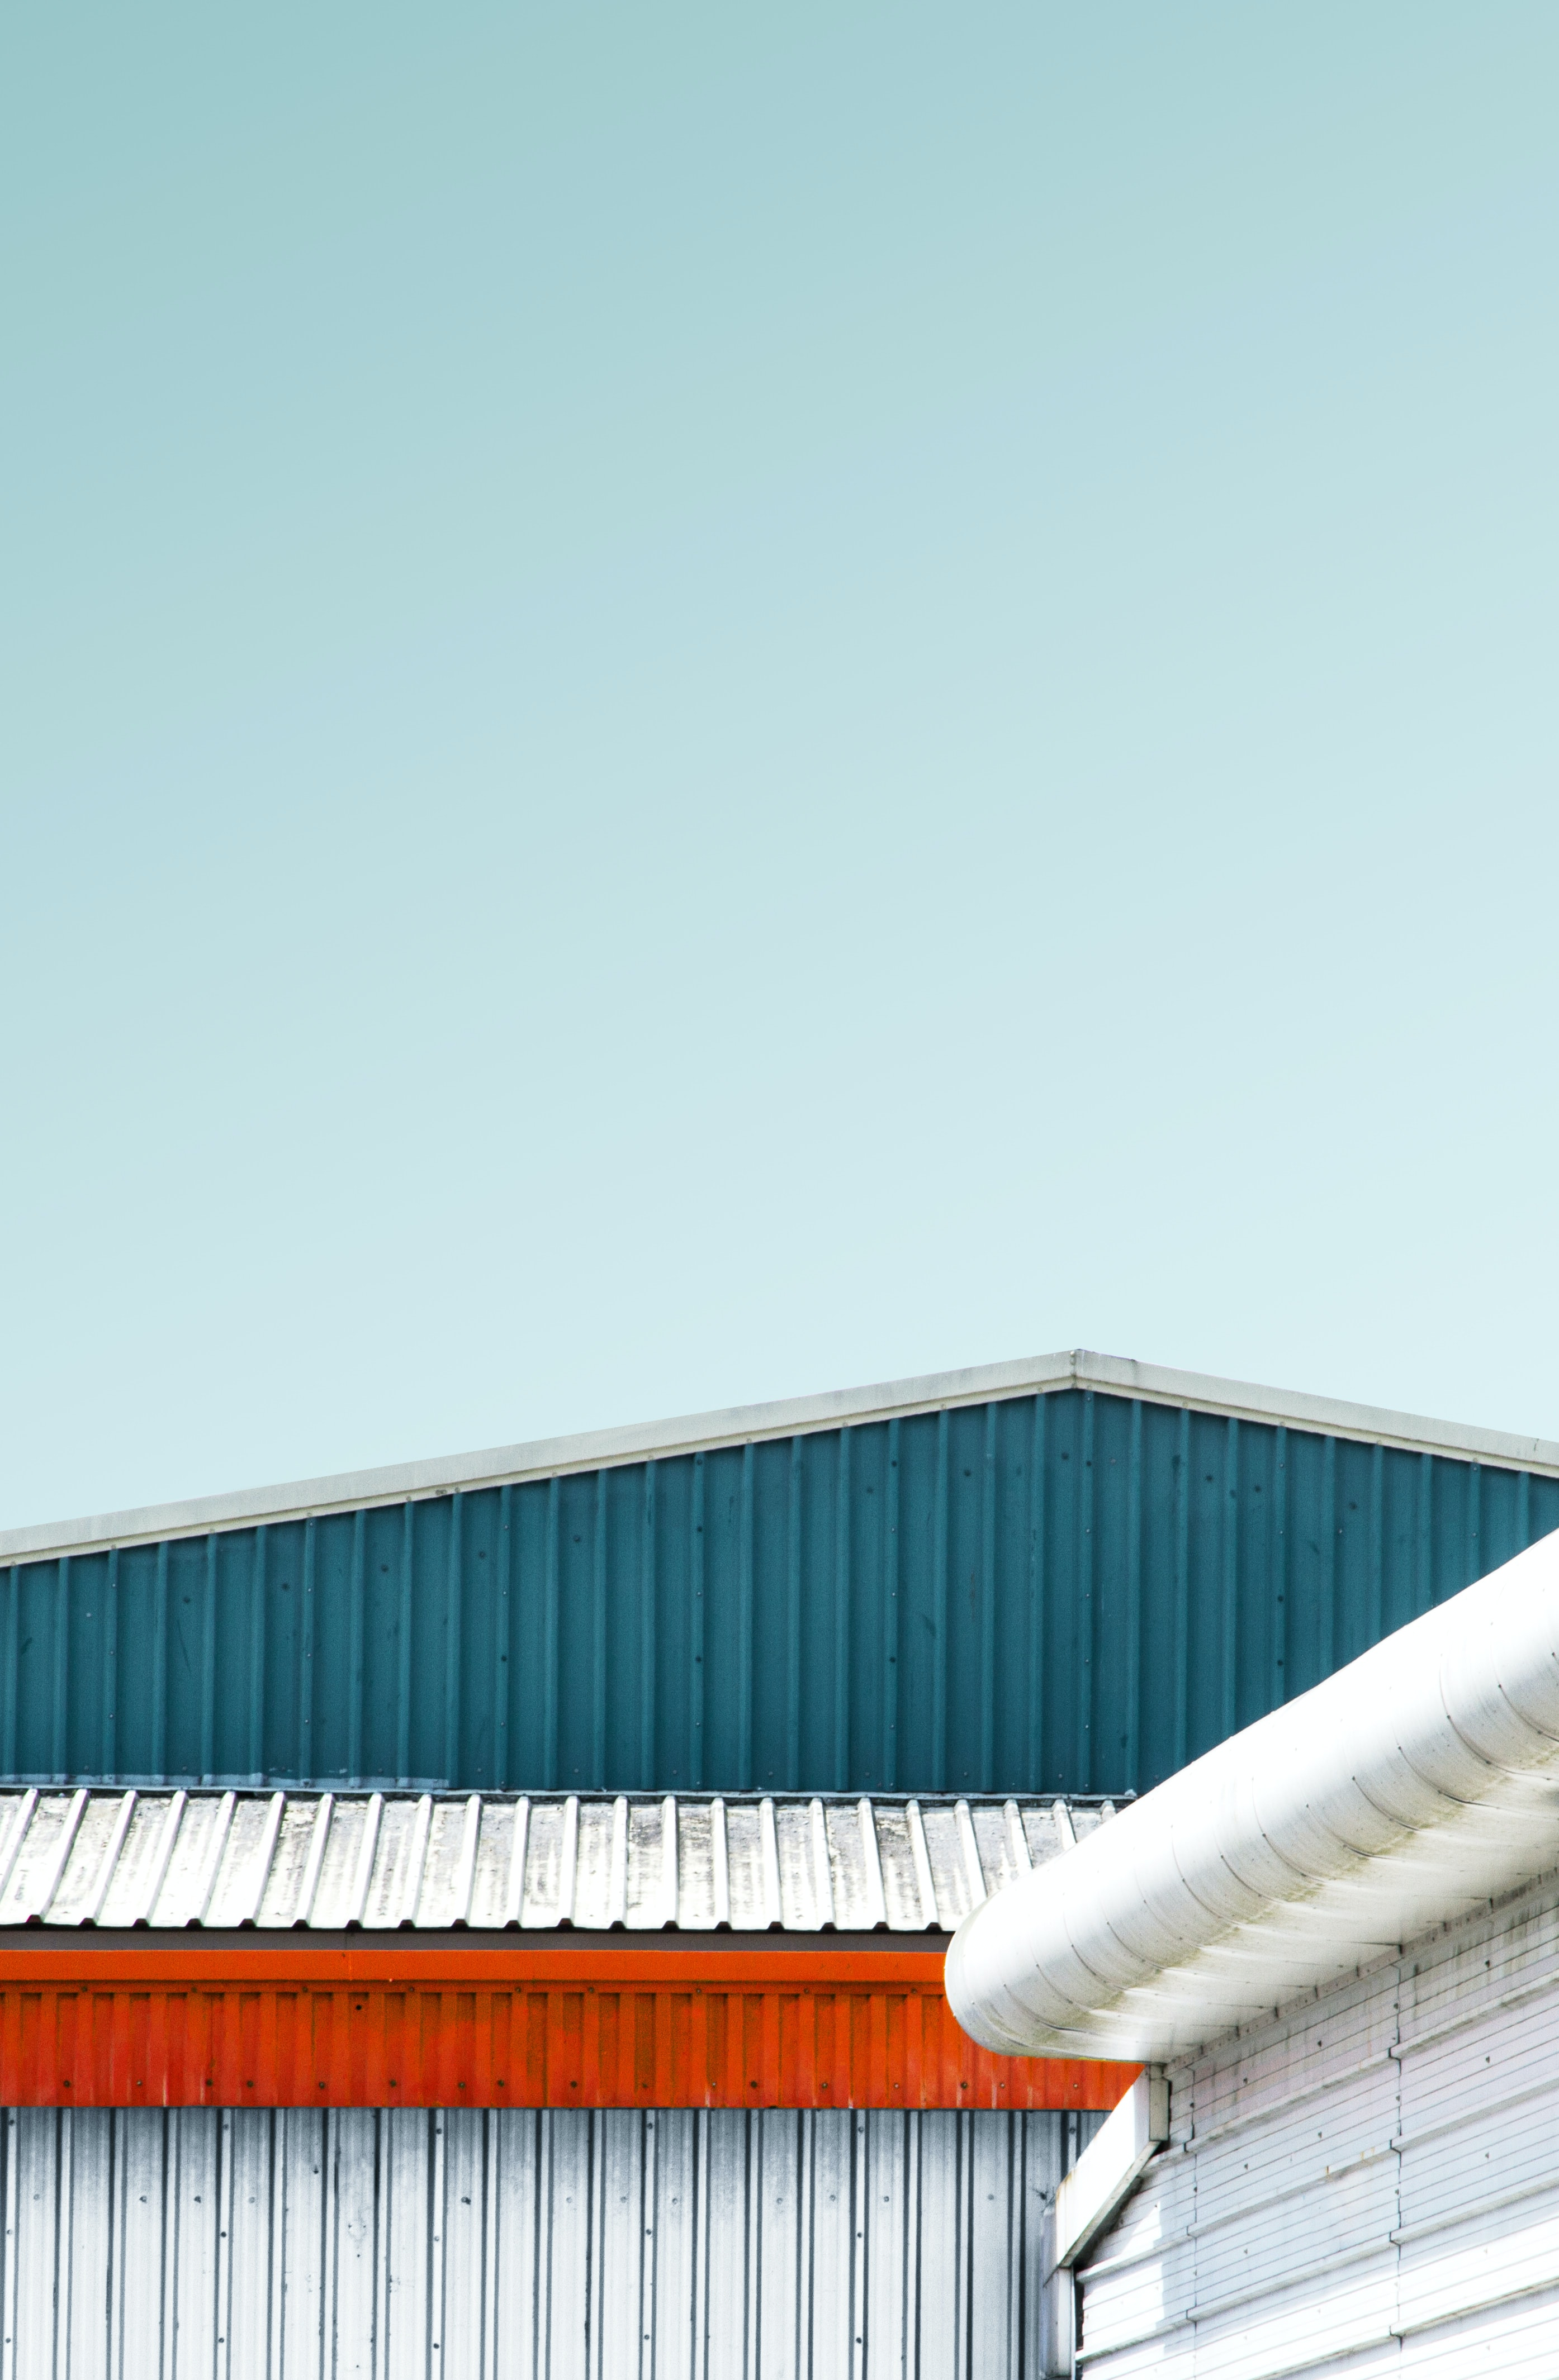 photo of gray and teal metal warehouse under clear sky